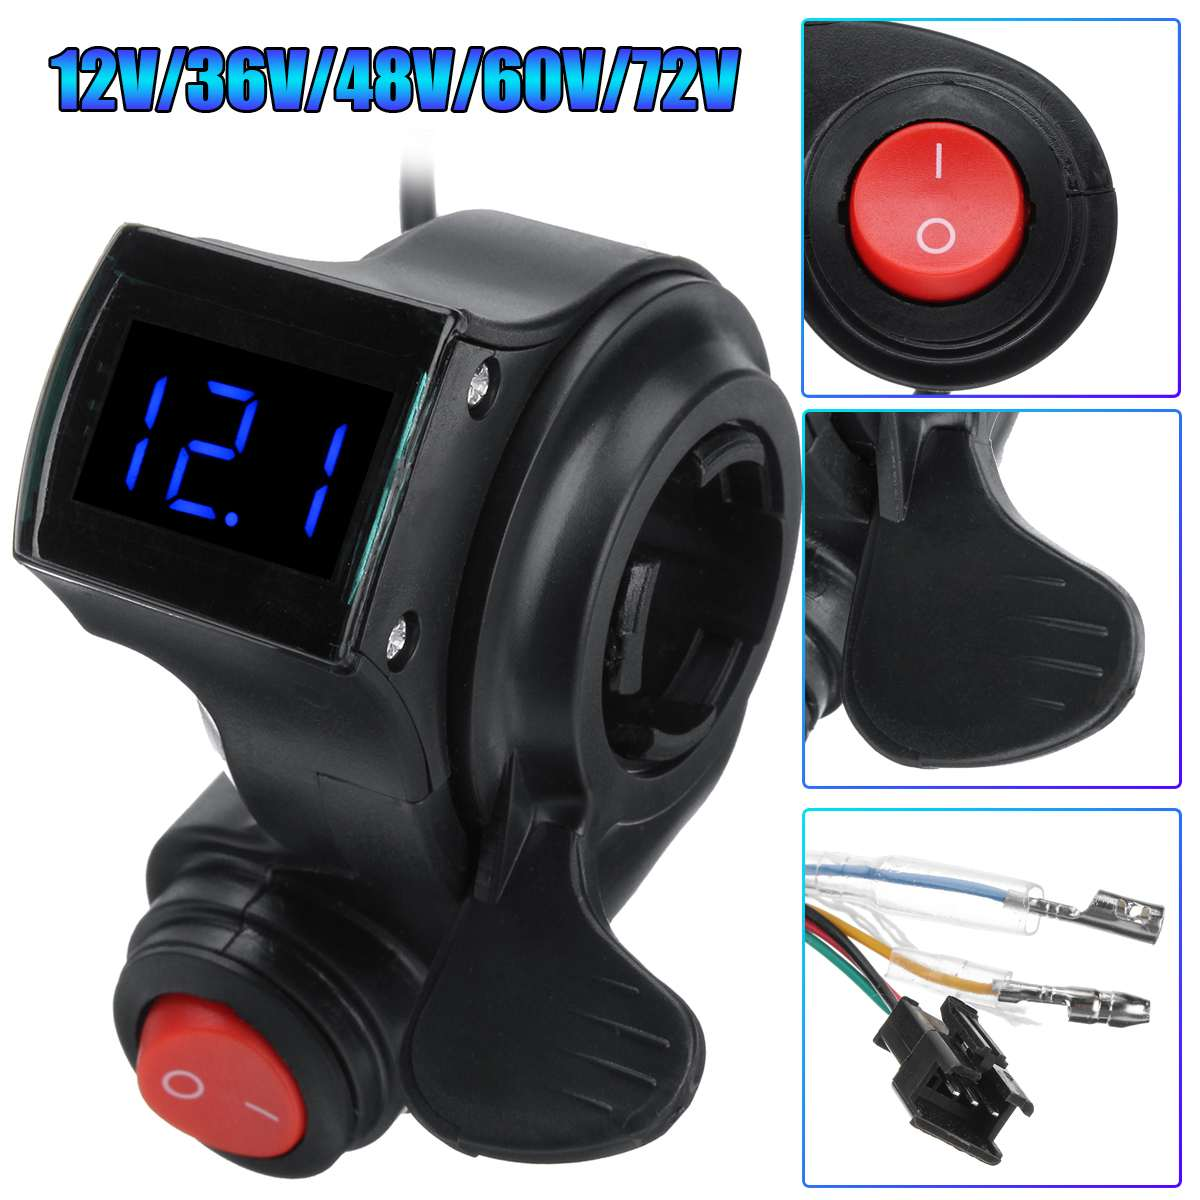 Atv,rv,boat & Other Vehicle Selfless Finger Thumb Throttle Electric Scooter With Power Switch Led Display Switch Handlebar Grips For Electric Bike 36v/48/60/72v Beautiful And Charming